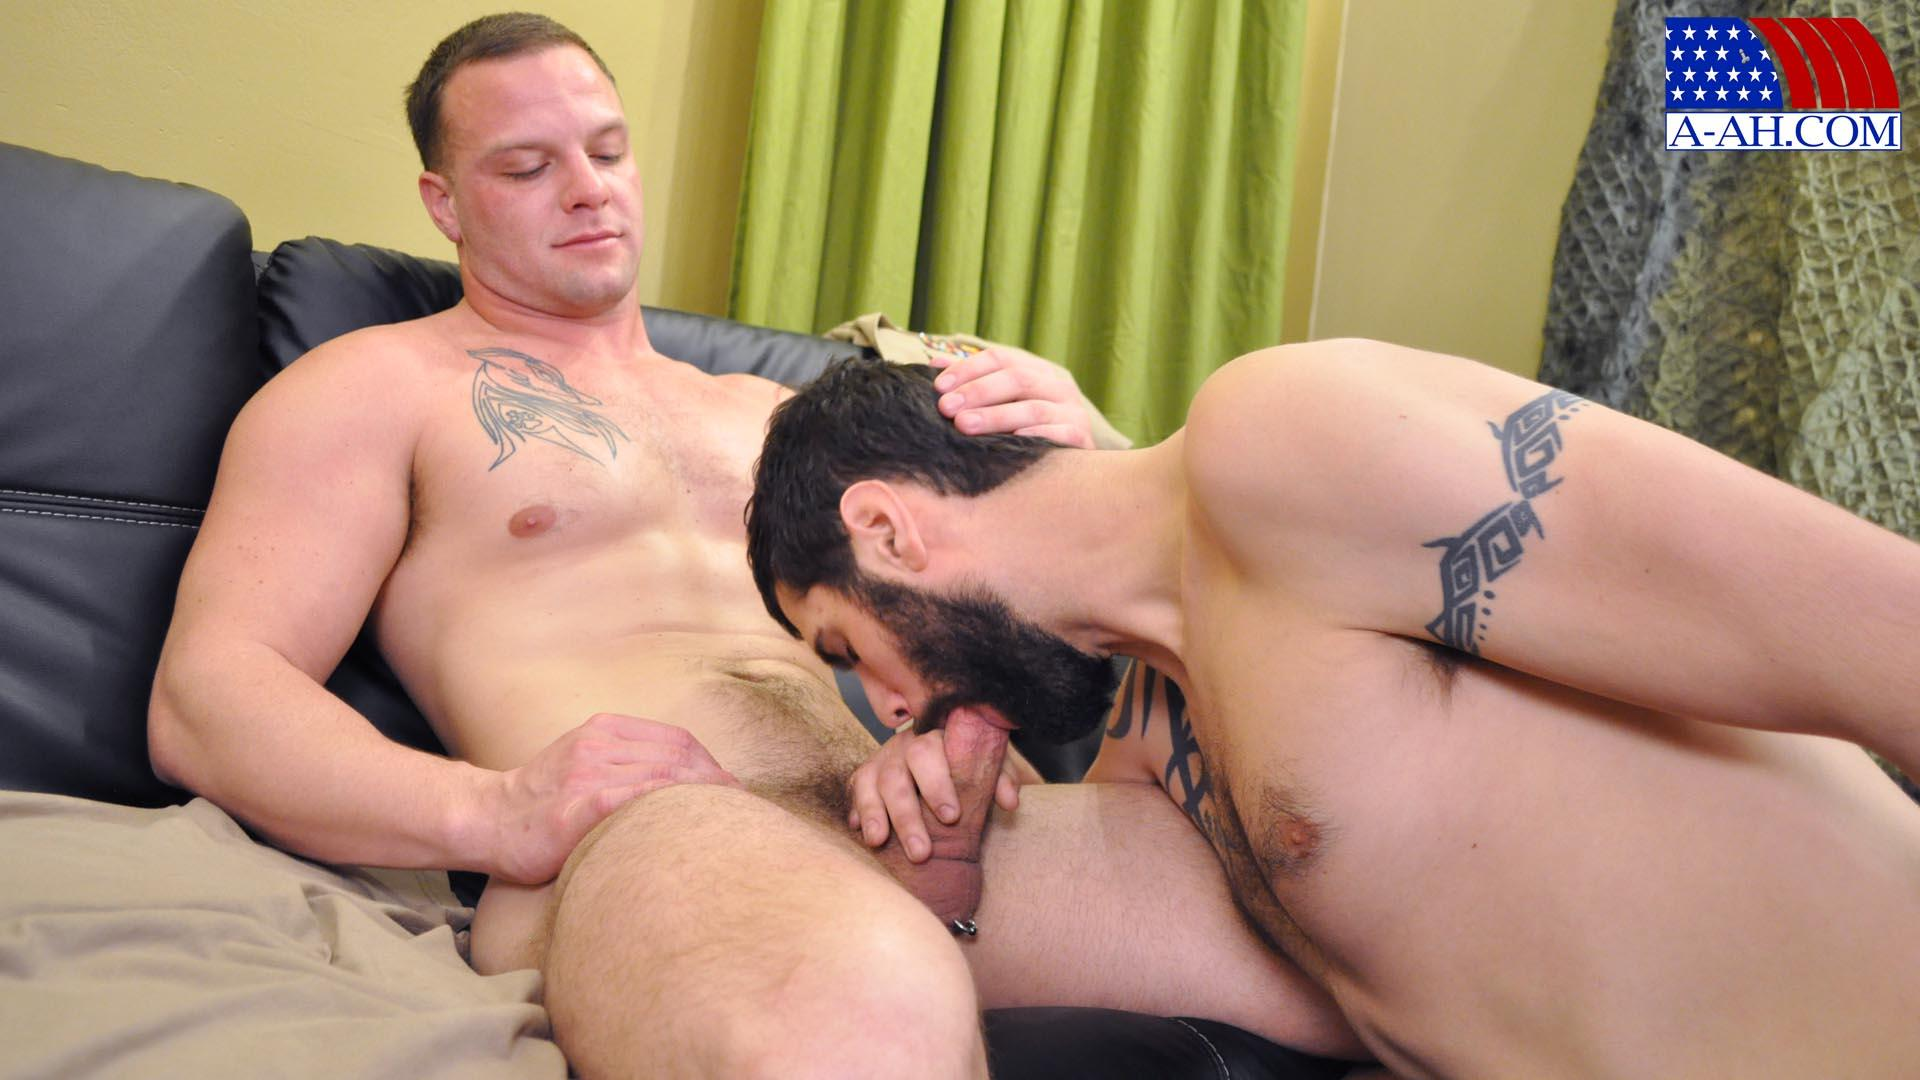 All American Heroes PRIVATE ANTONIO AND NAVY CORPSMAN LOGAN Military Guys Sucking Cock Amateur Gay Porn 10 US Navy Corpsman Trades Blowjobs With A British Army Private